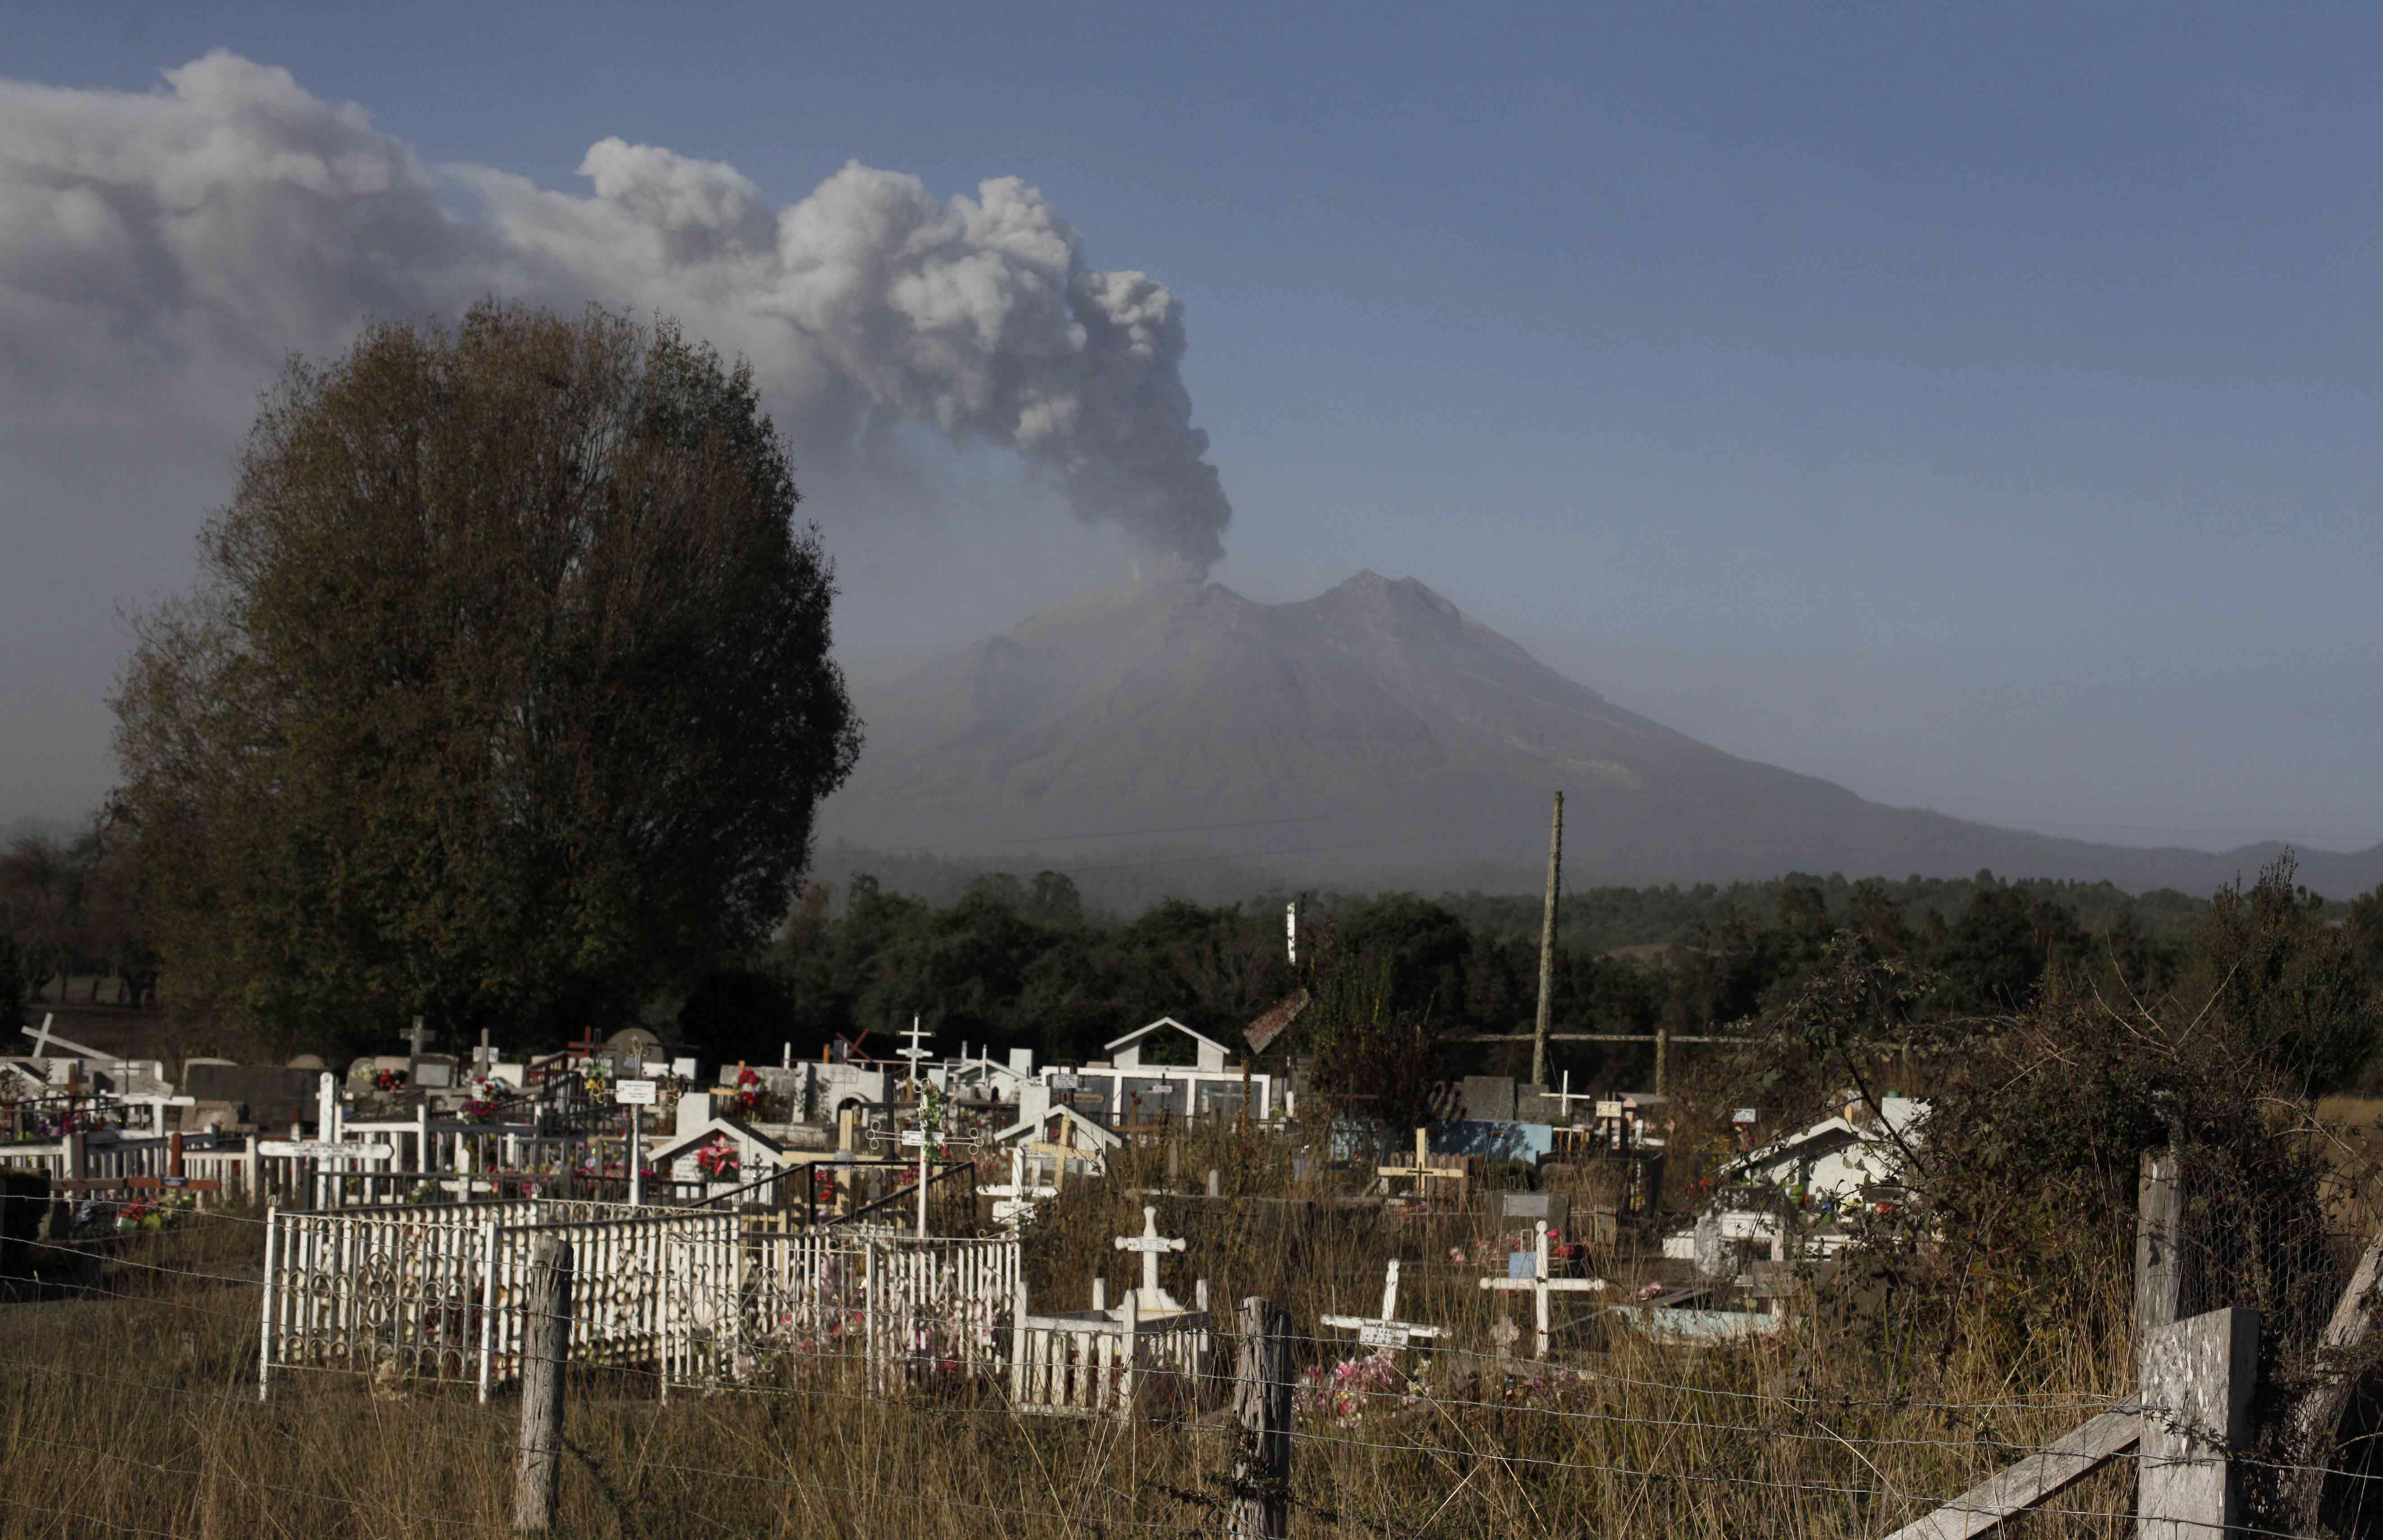 Chileans moved after dangerous volcanic mudflows detected